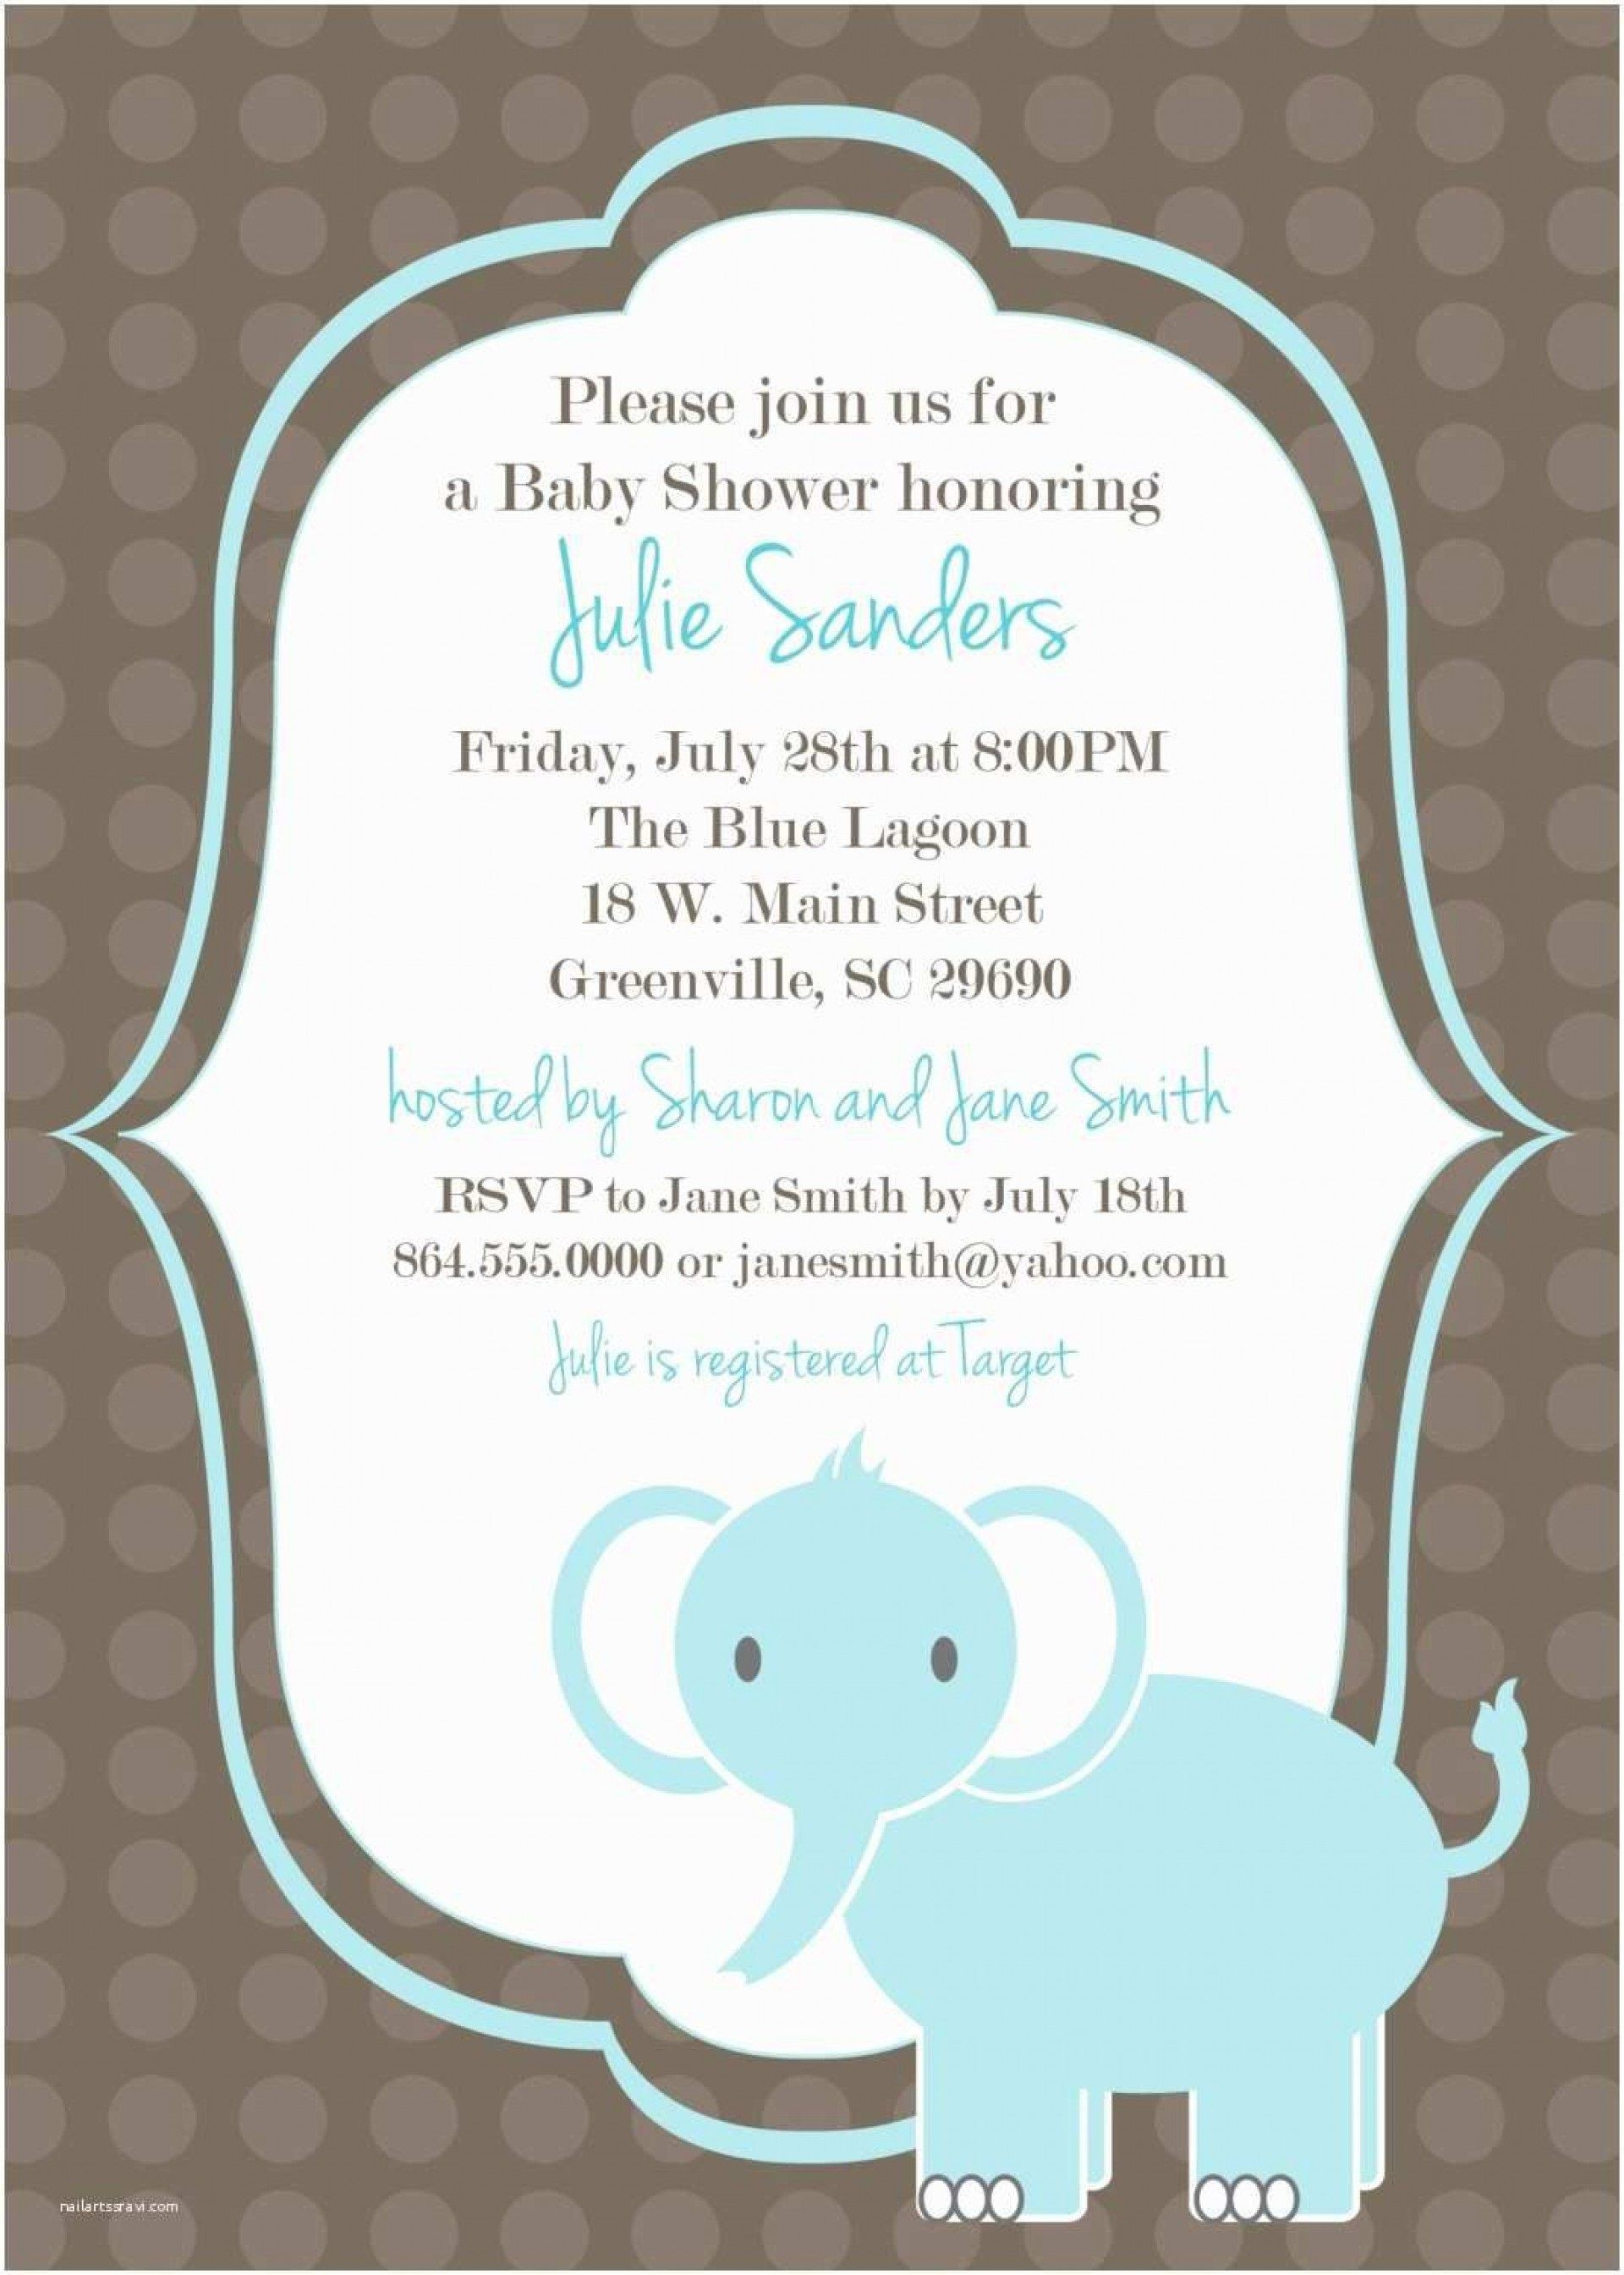 001 Wondrou Baby Shower Invite Template Word Concept  Invitation Wording Sample Free Example1920